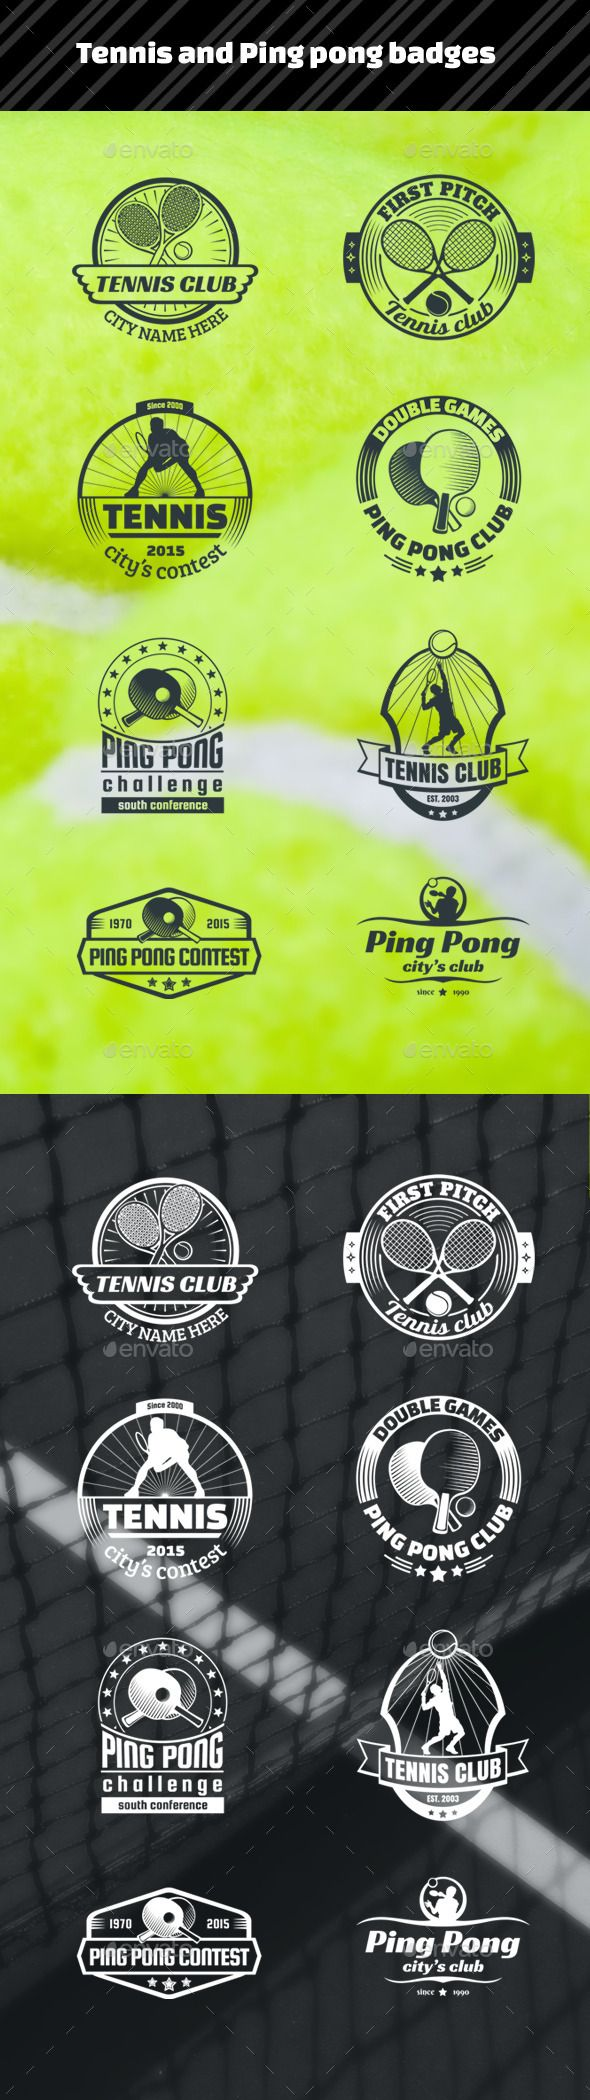 Tennis and Ping Pong Badges #design Download: http://graphicriver.net/item/tennis-and-ping-pong-badges/12003144?ref=ksioks